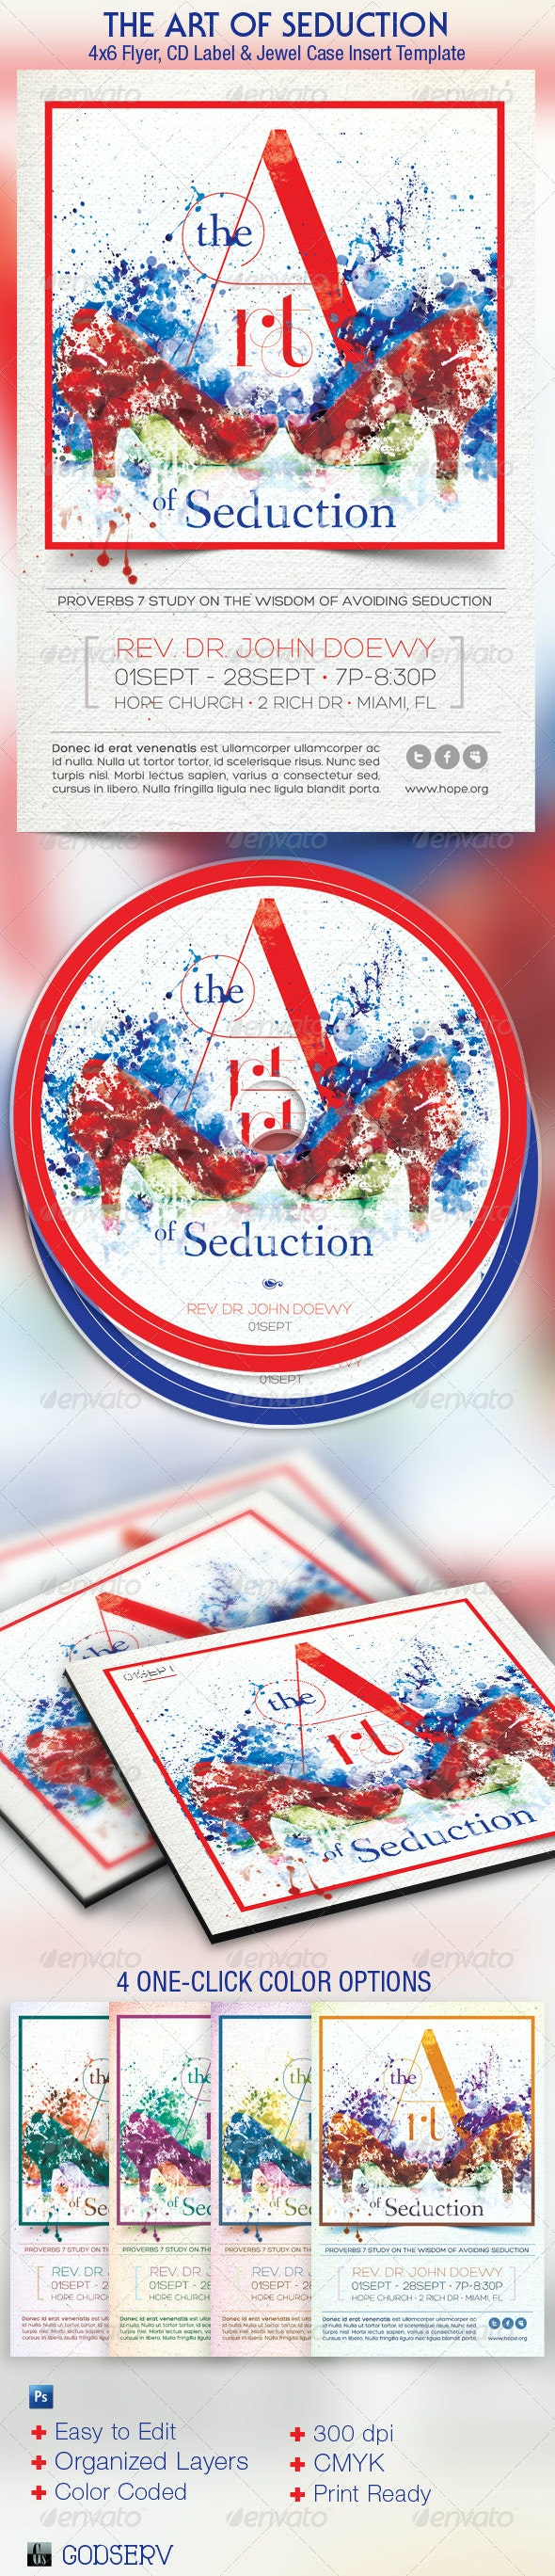 Seduction Church Flyer CD Template - Church Flyers